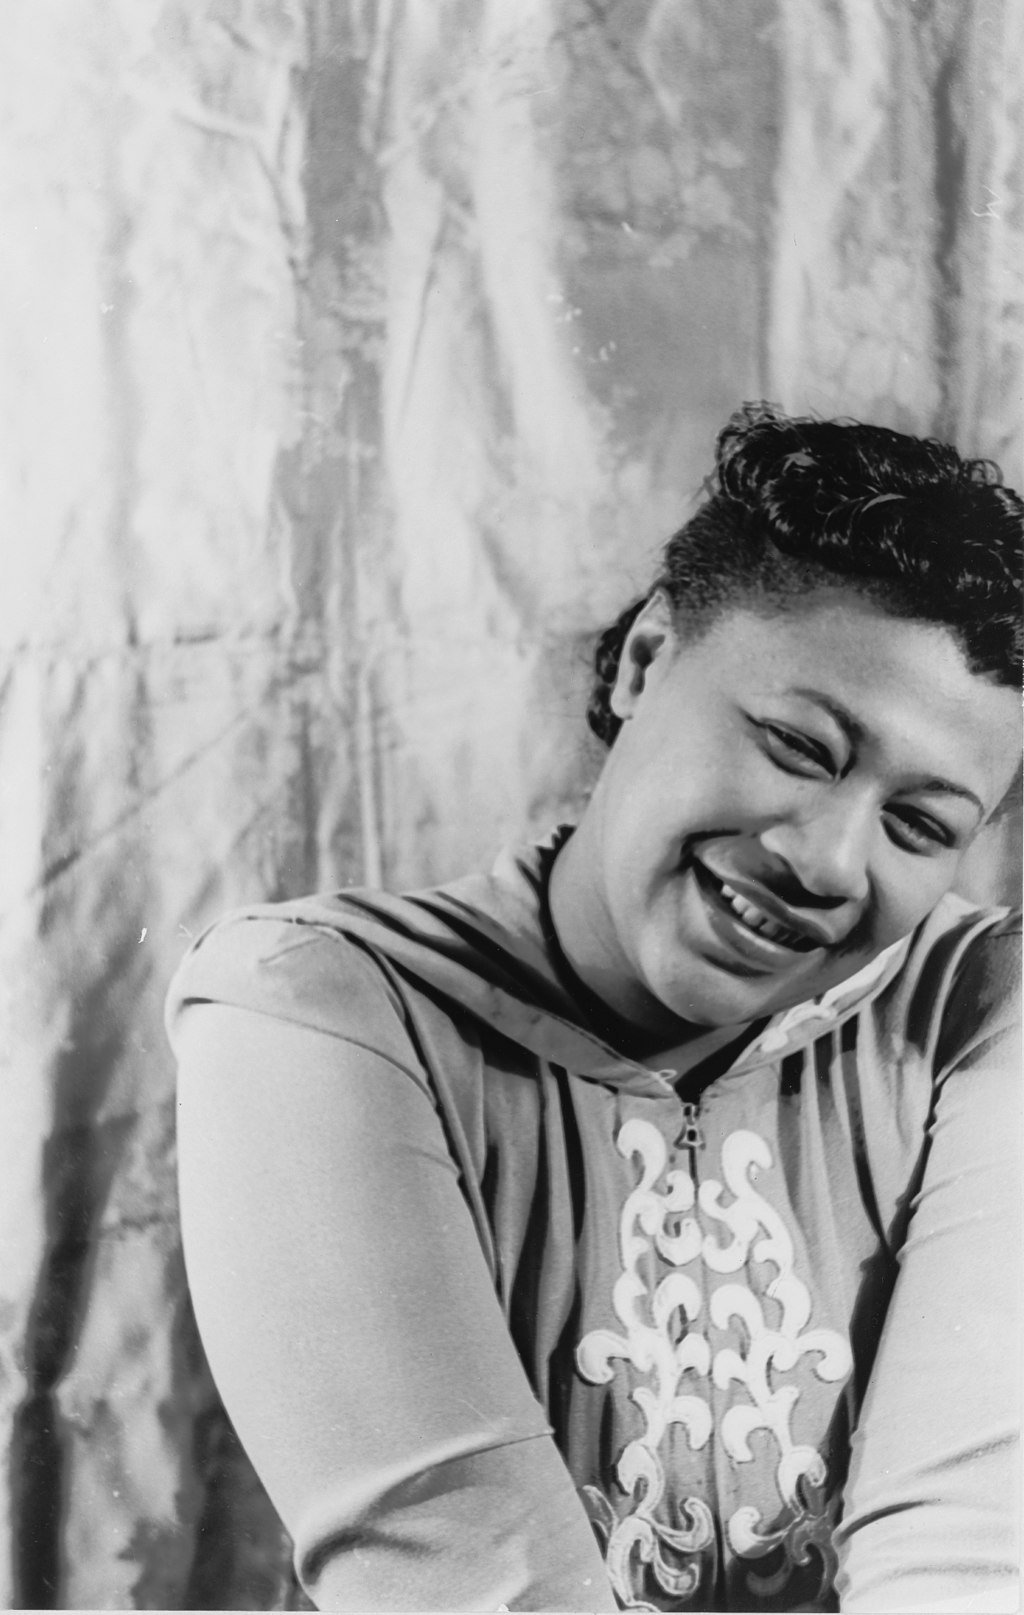 Ella Fitzgerald's music career took off in the late 1930s, selling over a million copies of her album at the age of 21. She is pictured here in 1940. Photo courtesy of the Library of Congress.